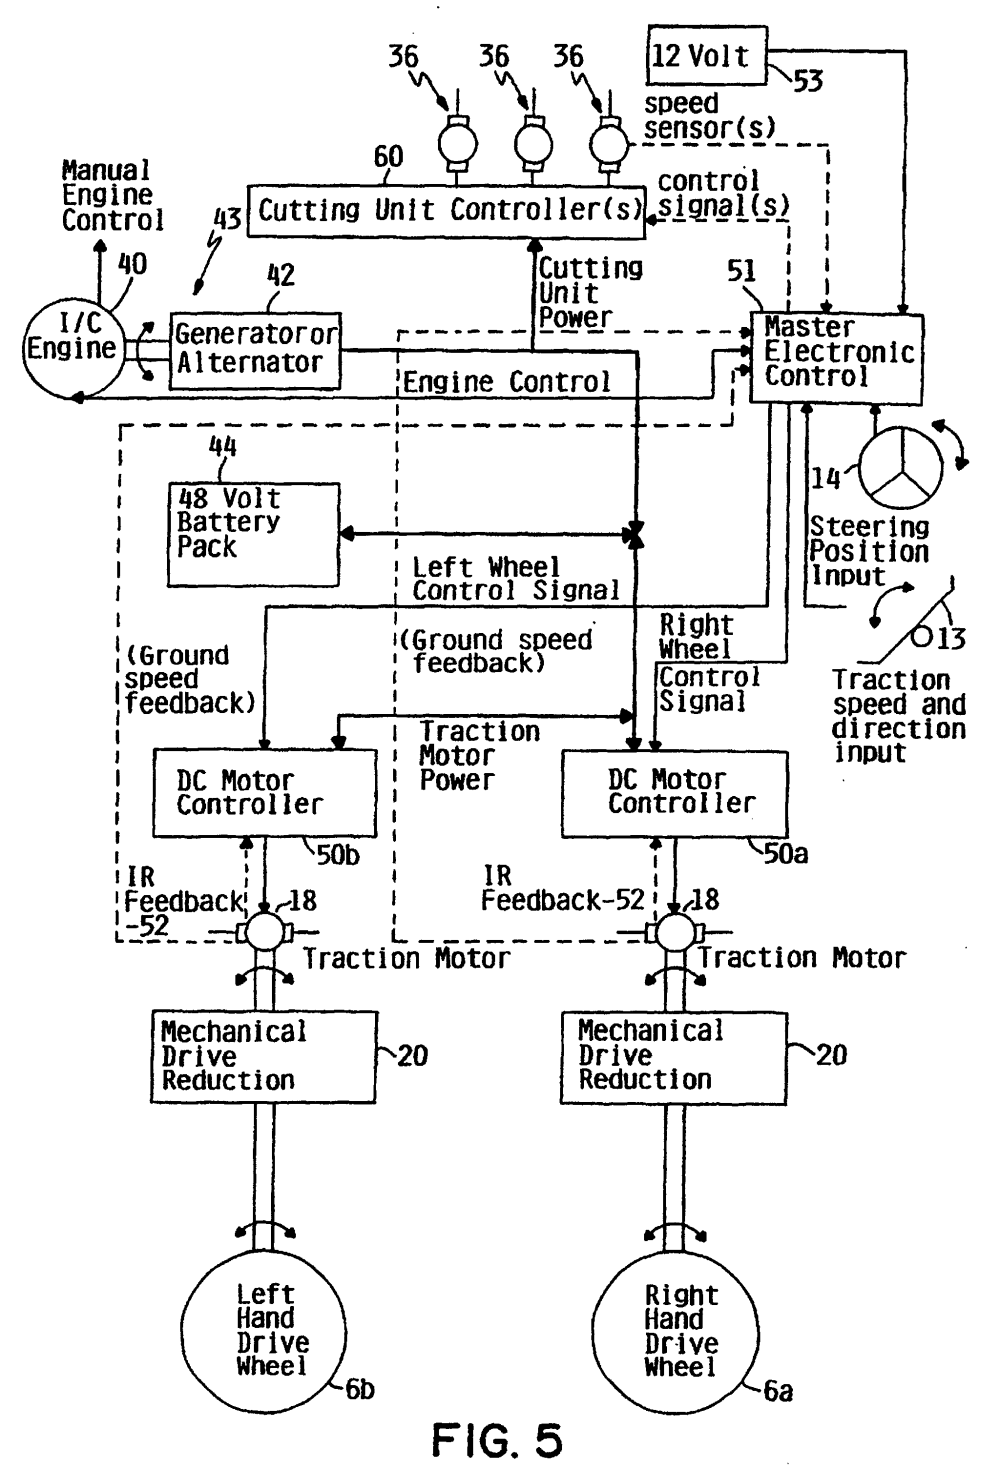 medium resolution of onan microlite wiring diagram wiring diagrams and schematics r k s onan 4 0kyfa26100 4000 watt microlite 0